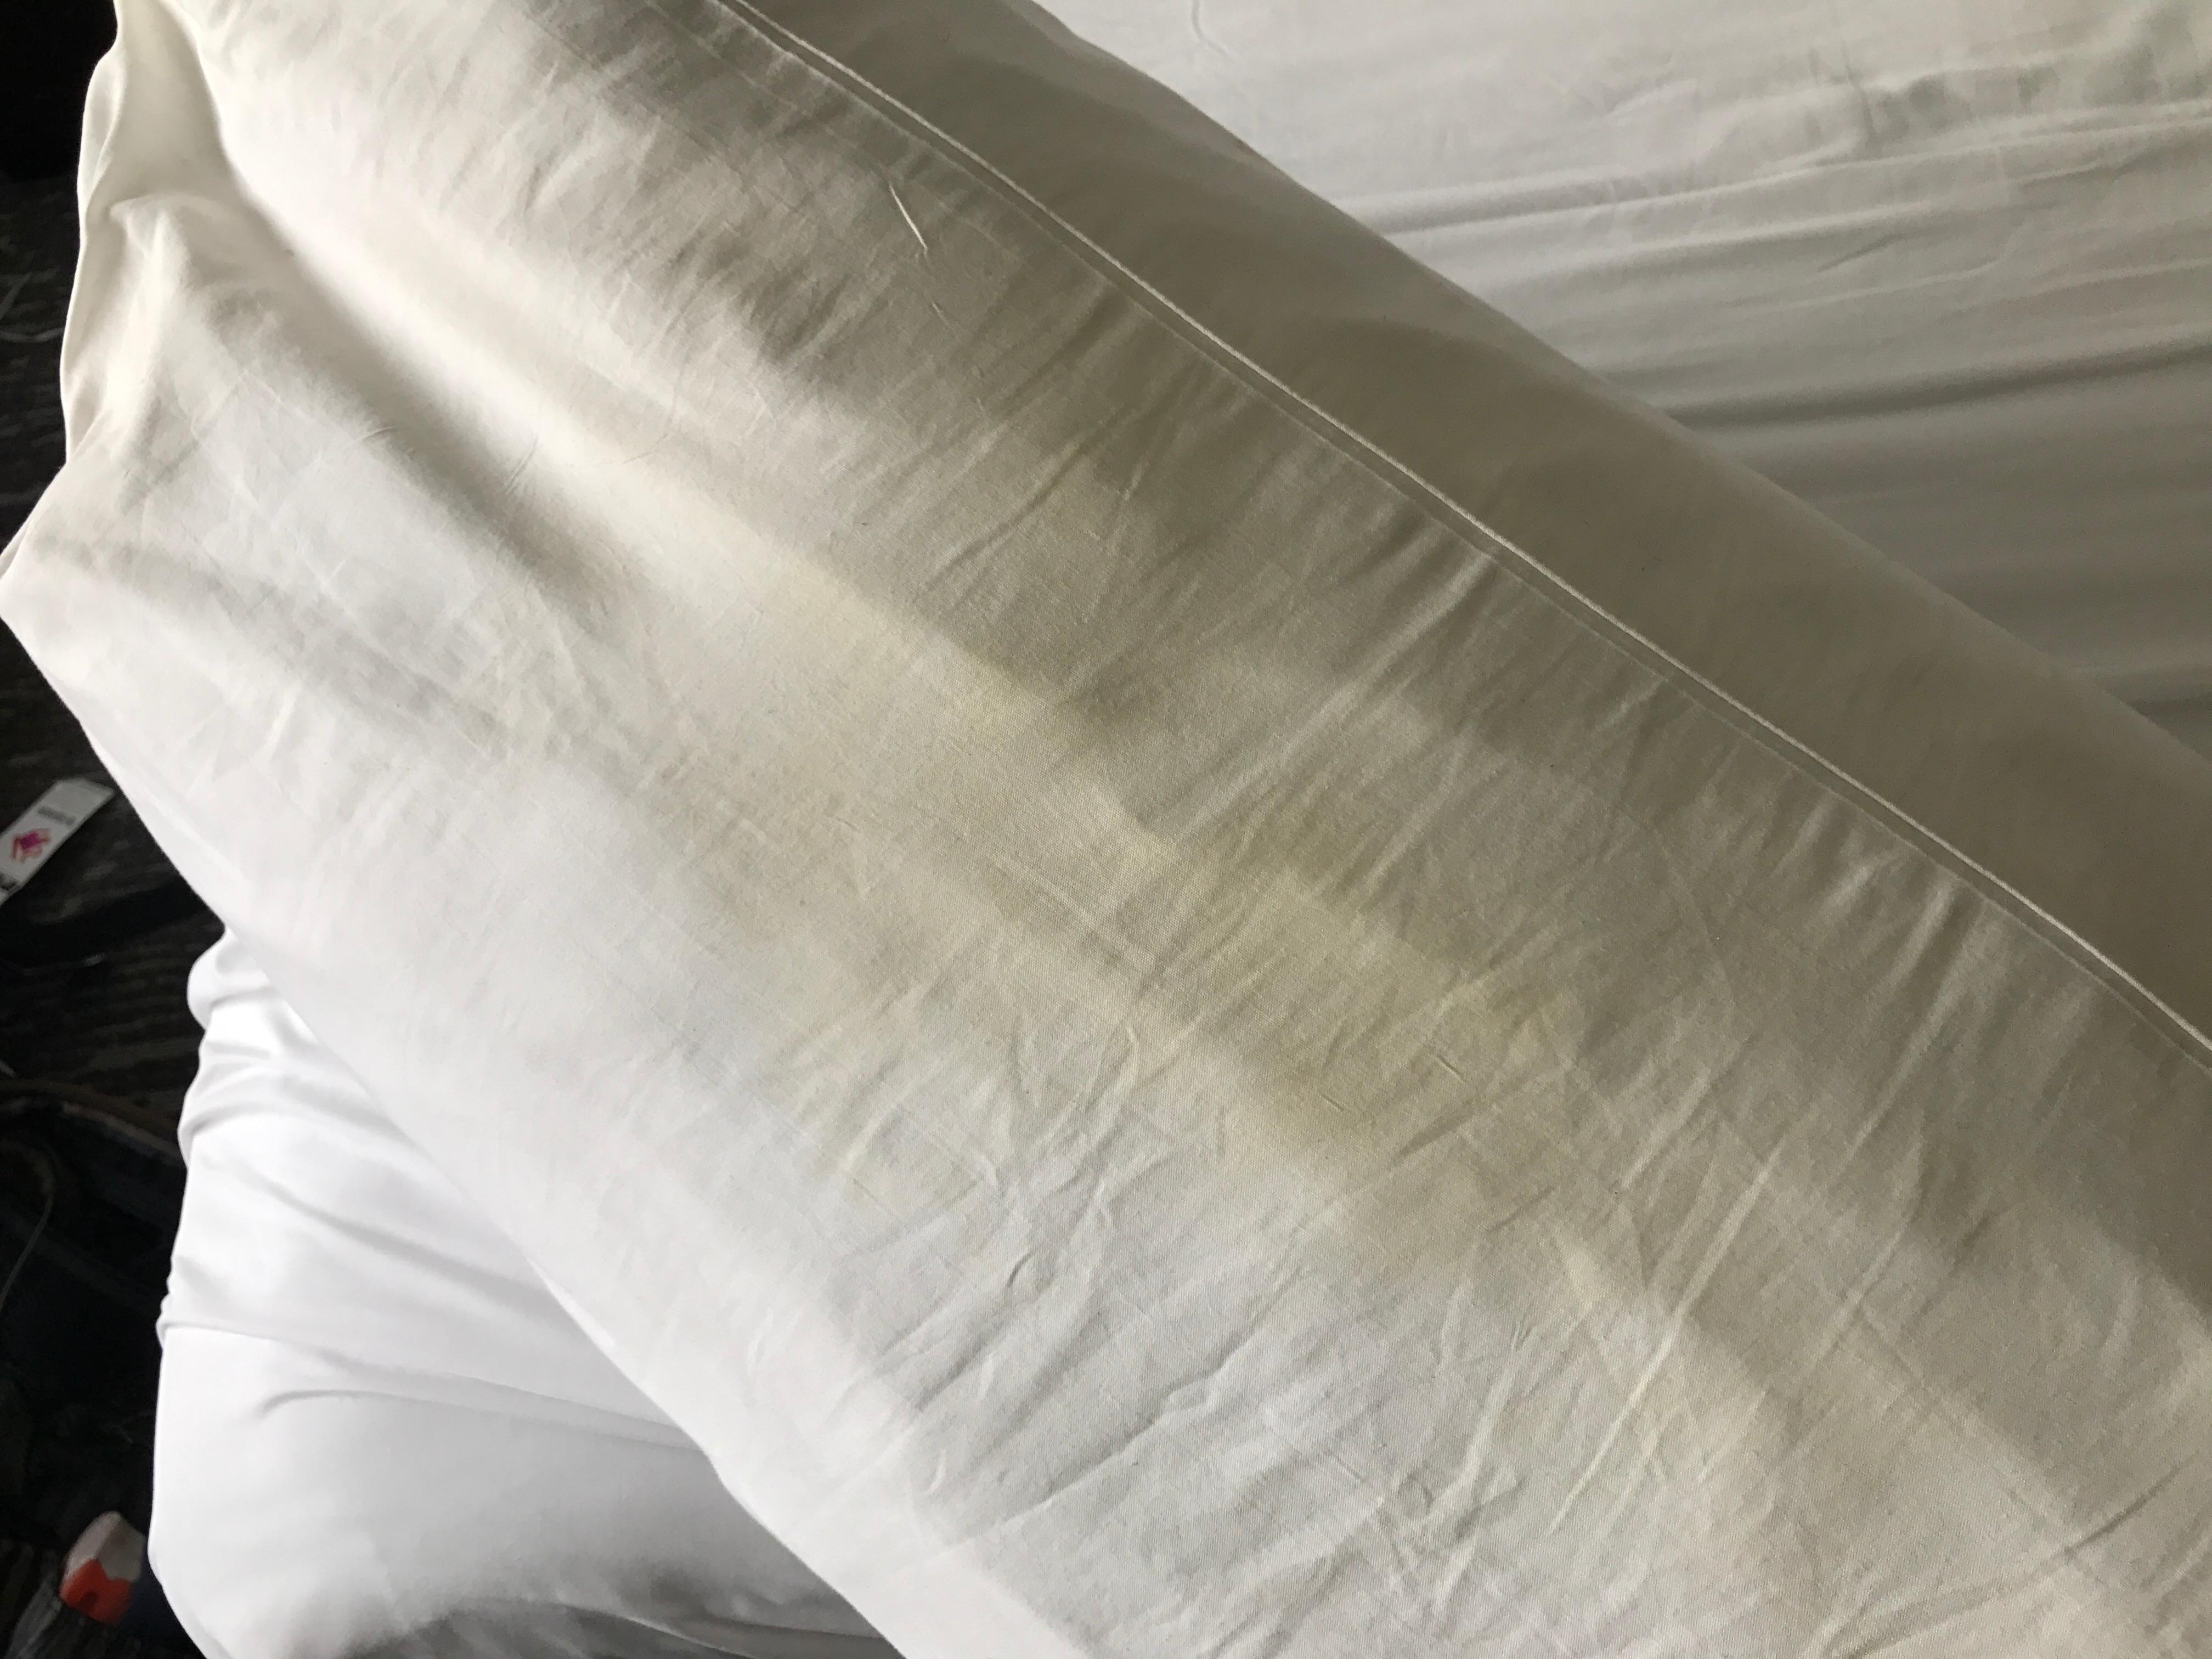 Pillow with yellow stains